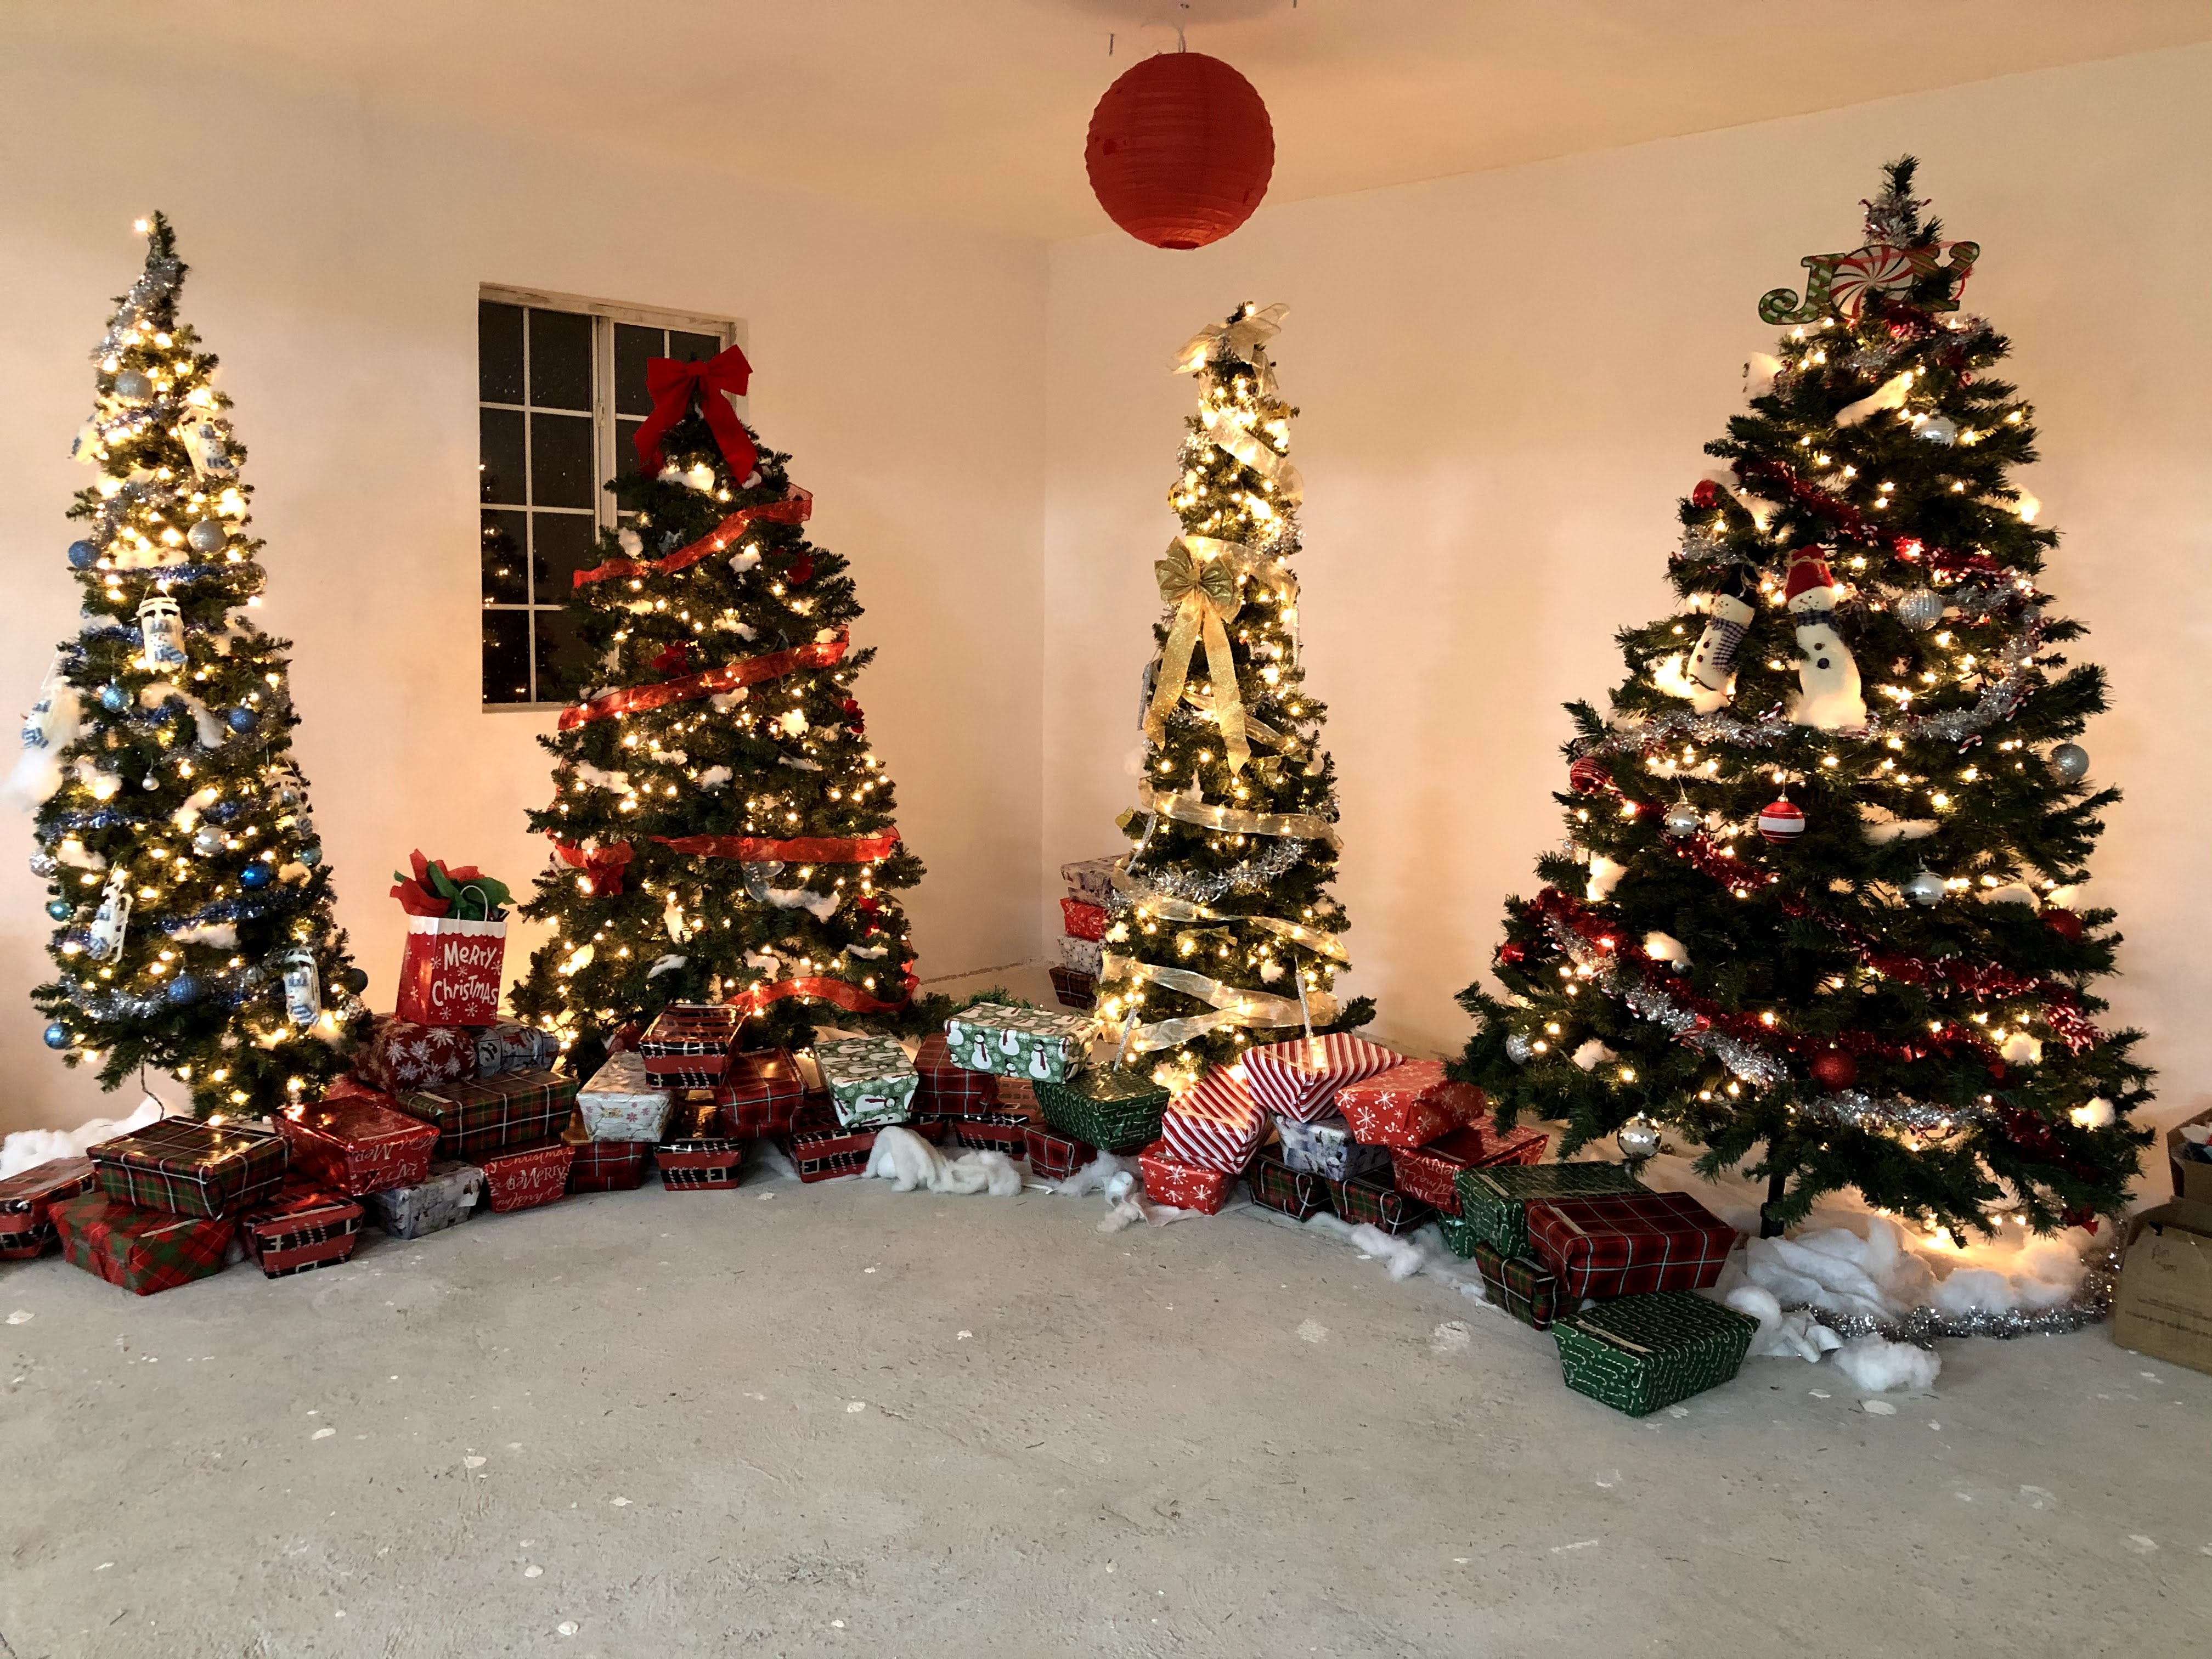 The Christmas trees with gifts